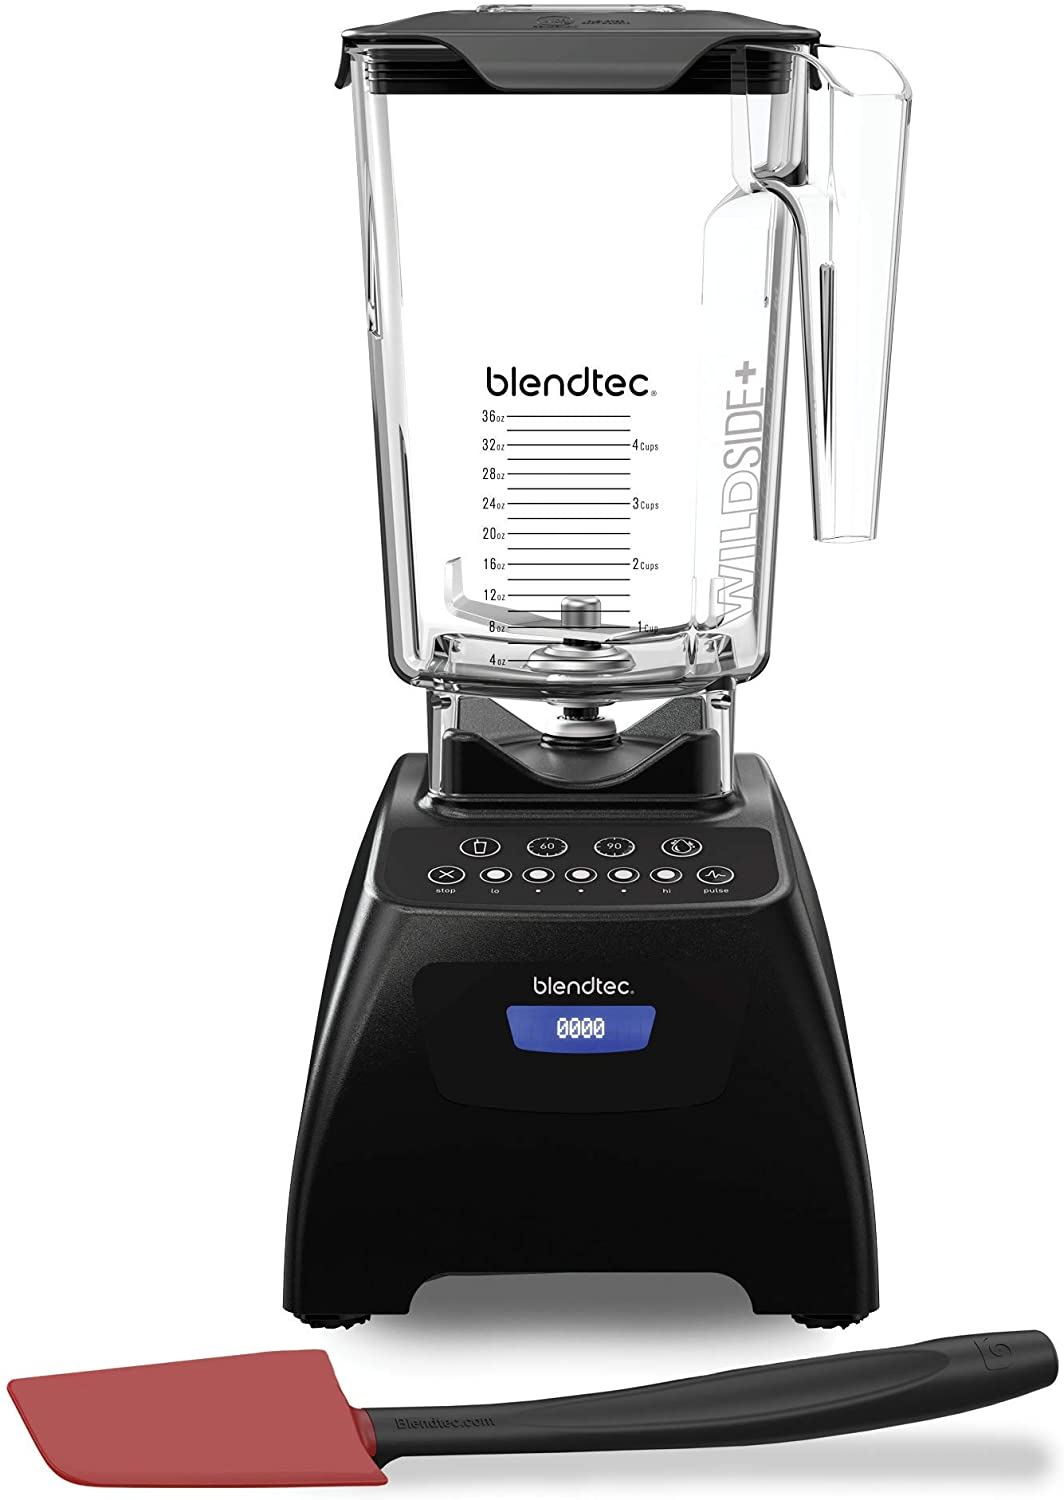 Blendtec Classic 575 Kitchen Blender, 90 oz/36 oz Blending Capacity, Black/Spoonula